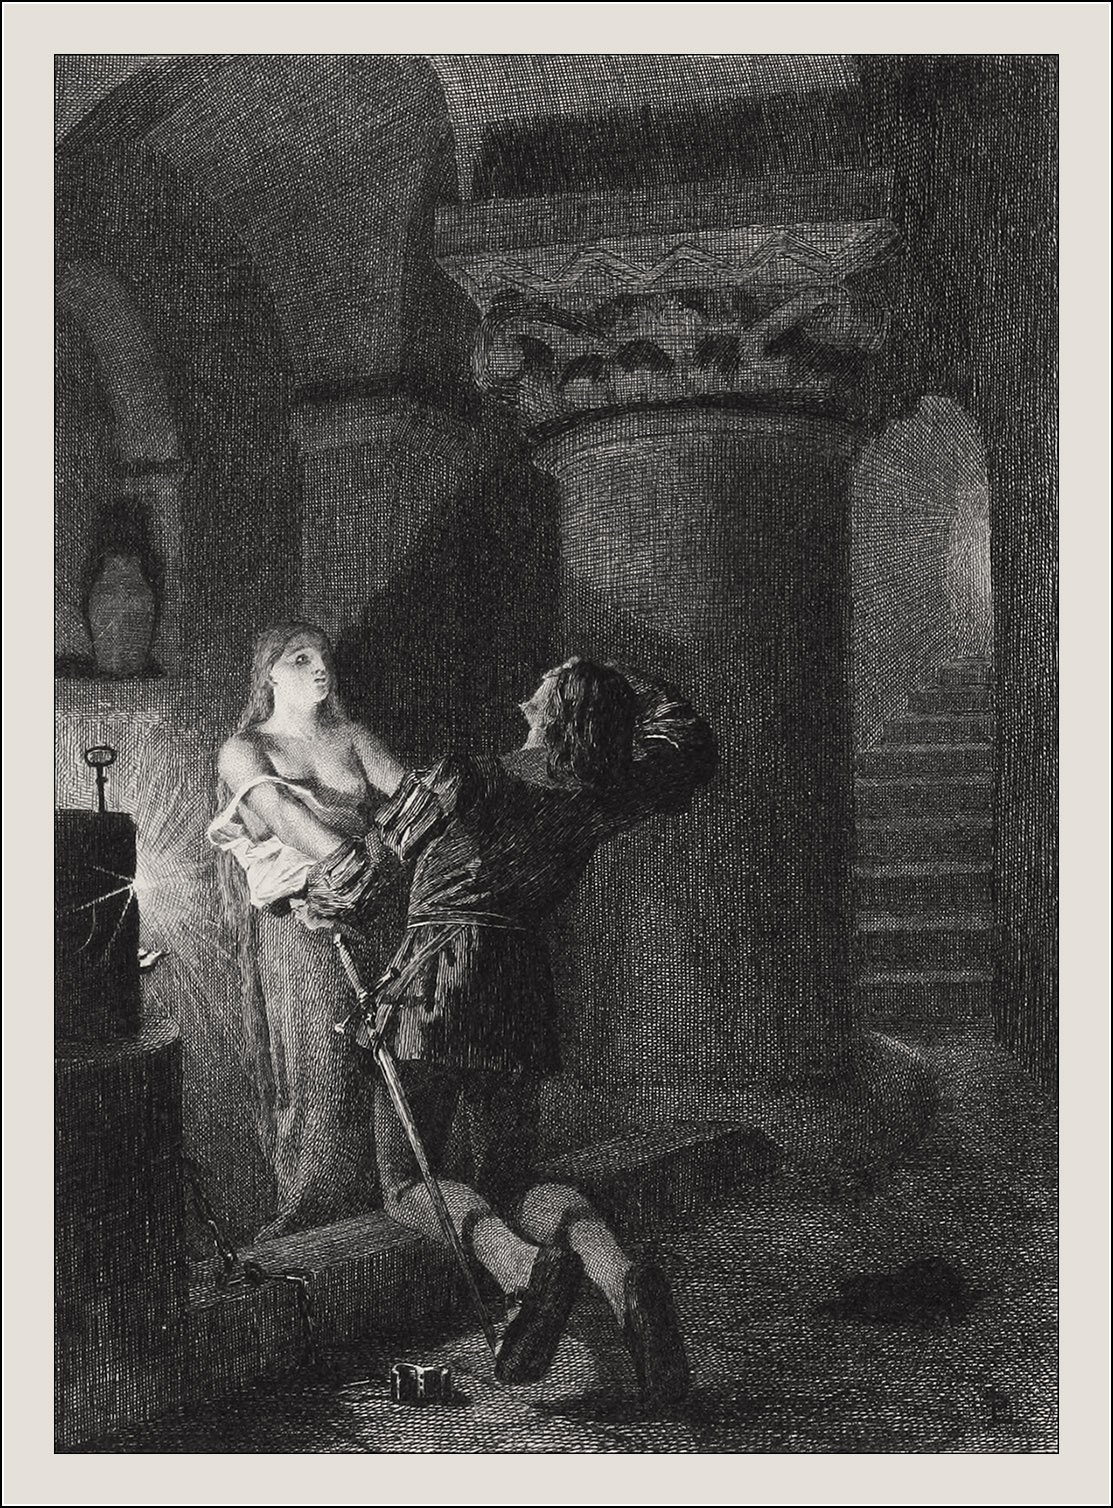 J.P. Laurens. The first part of Faust